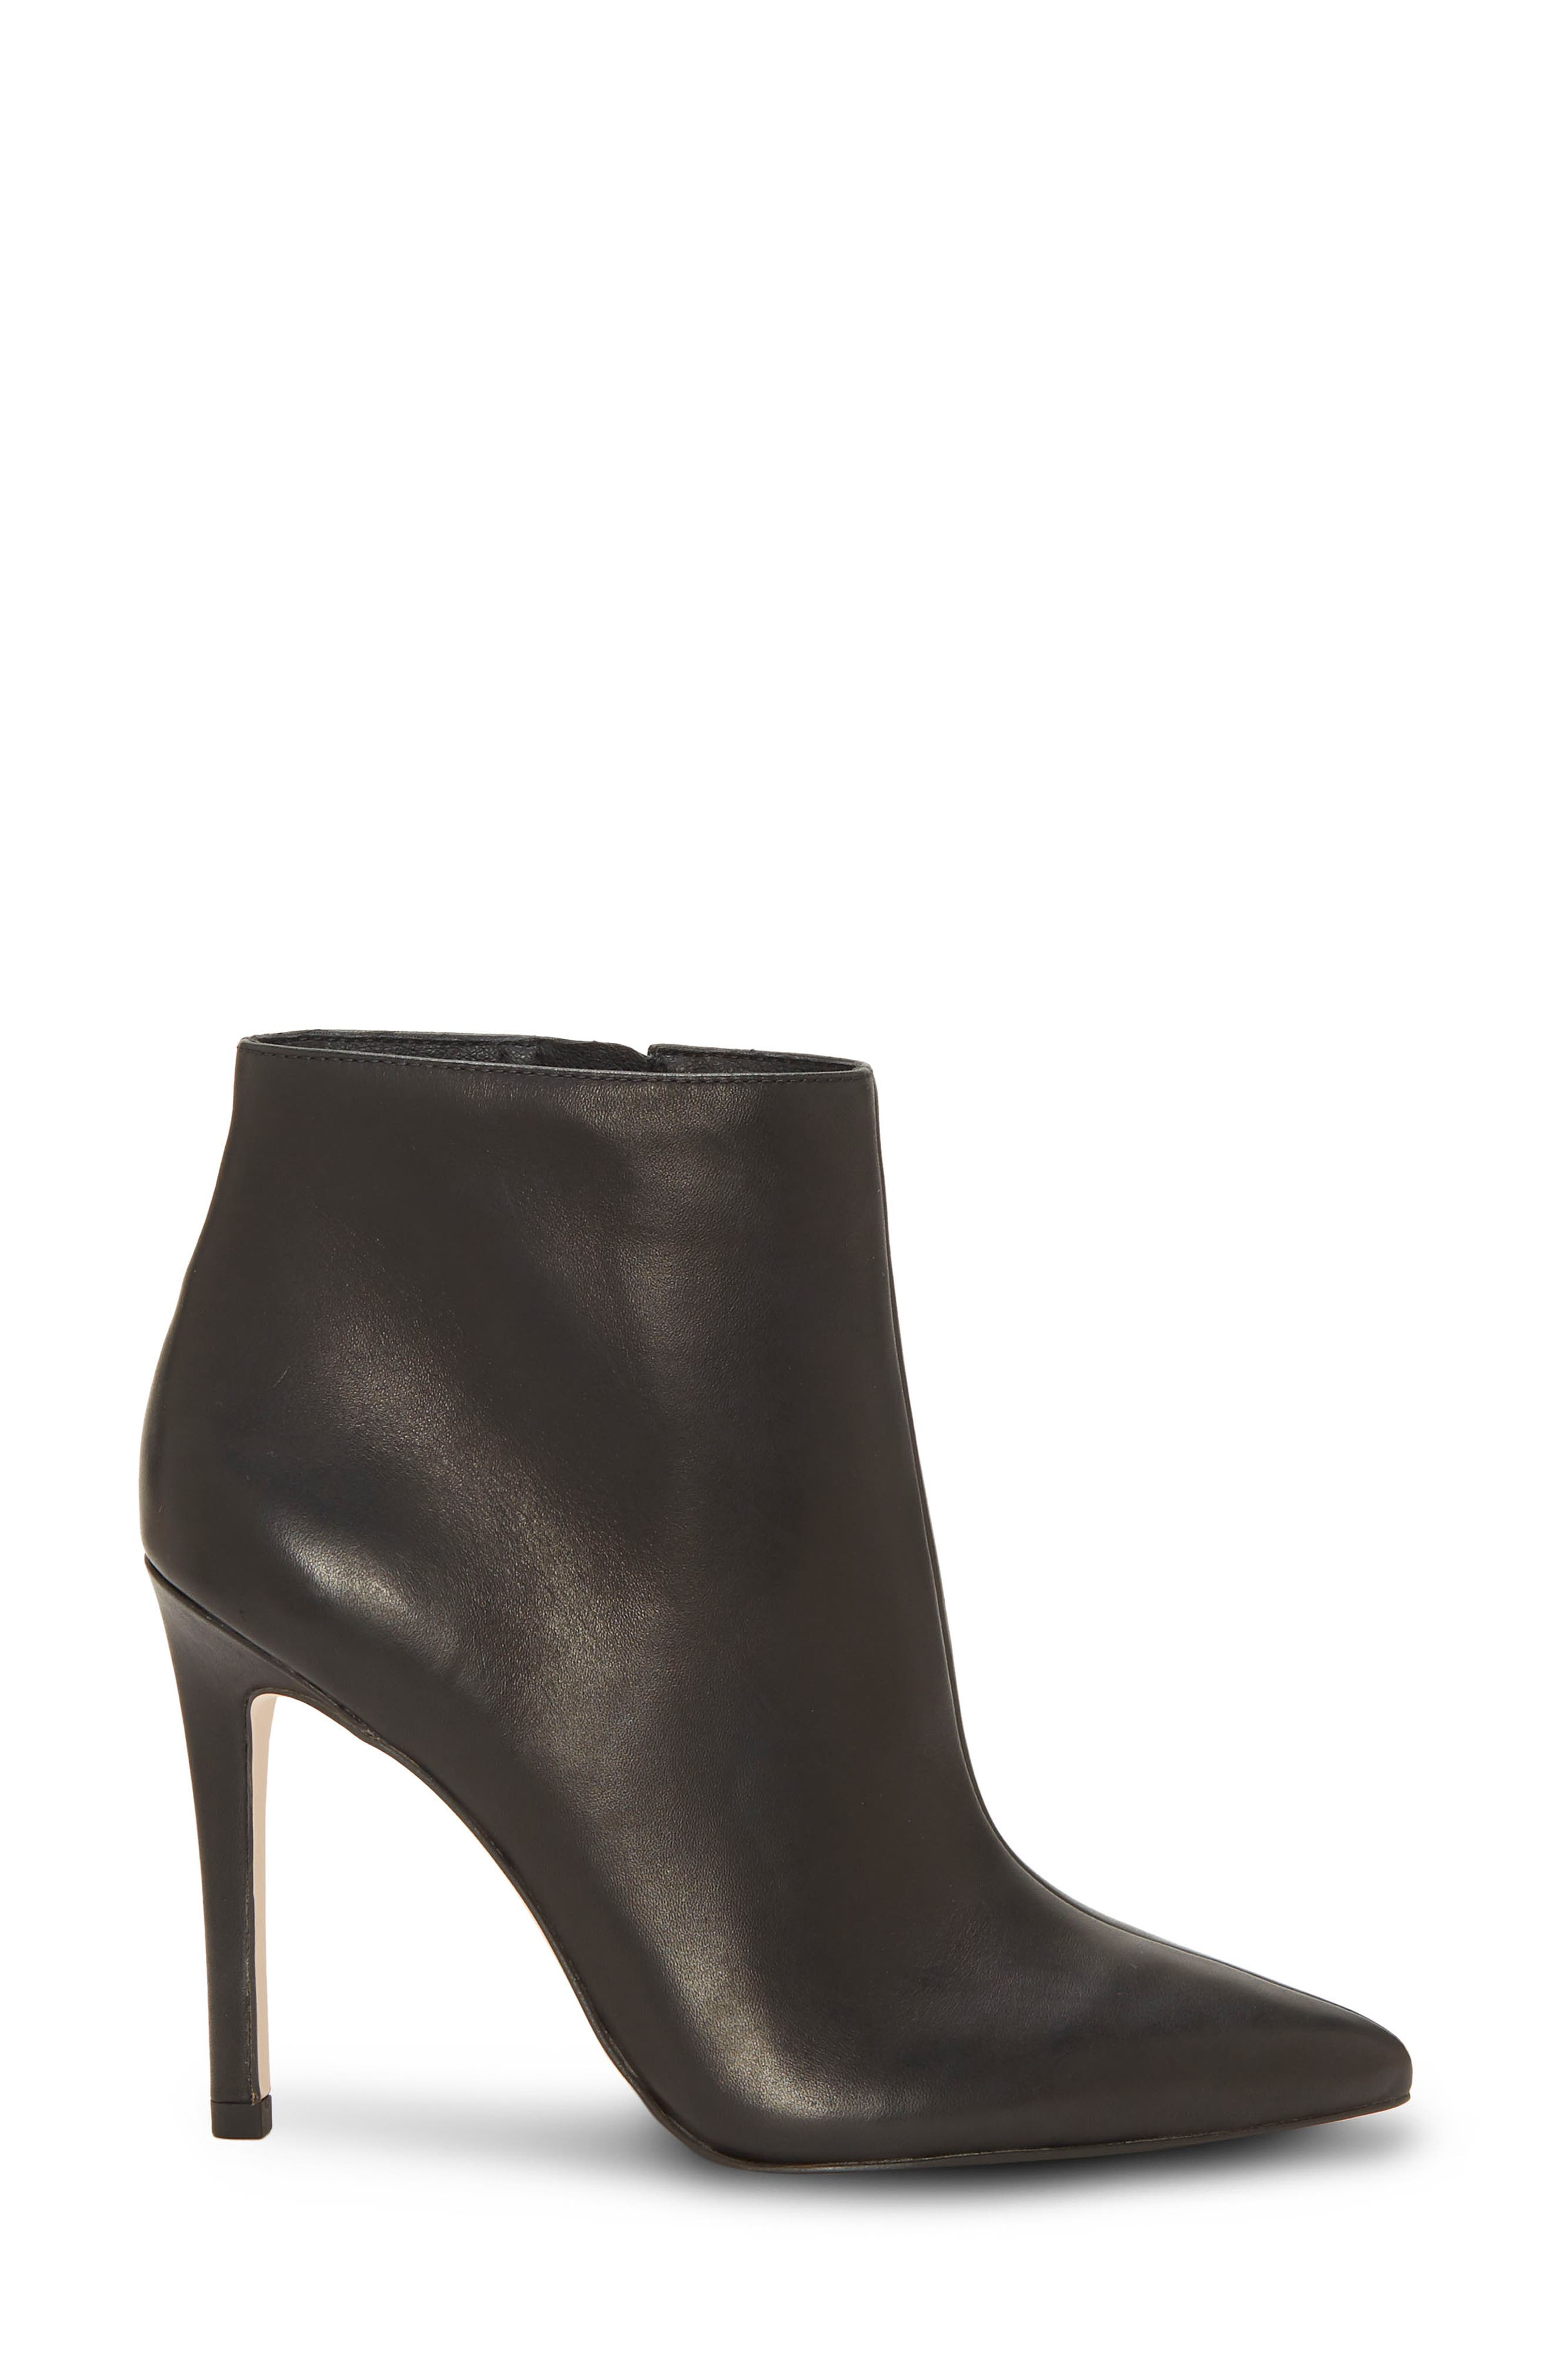 Perci Bootie,                             Alternate thumbnail 3, color,                             BLACK LEATHER